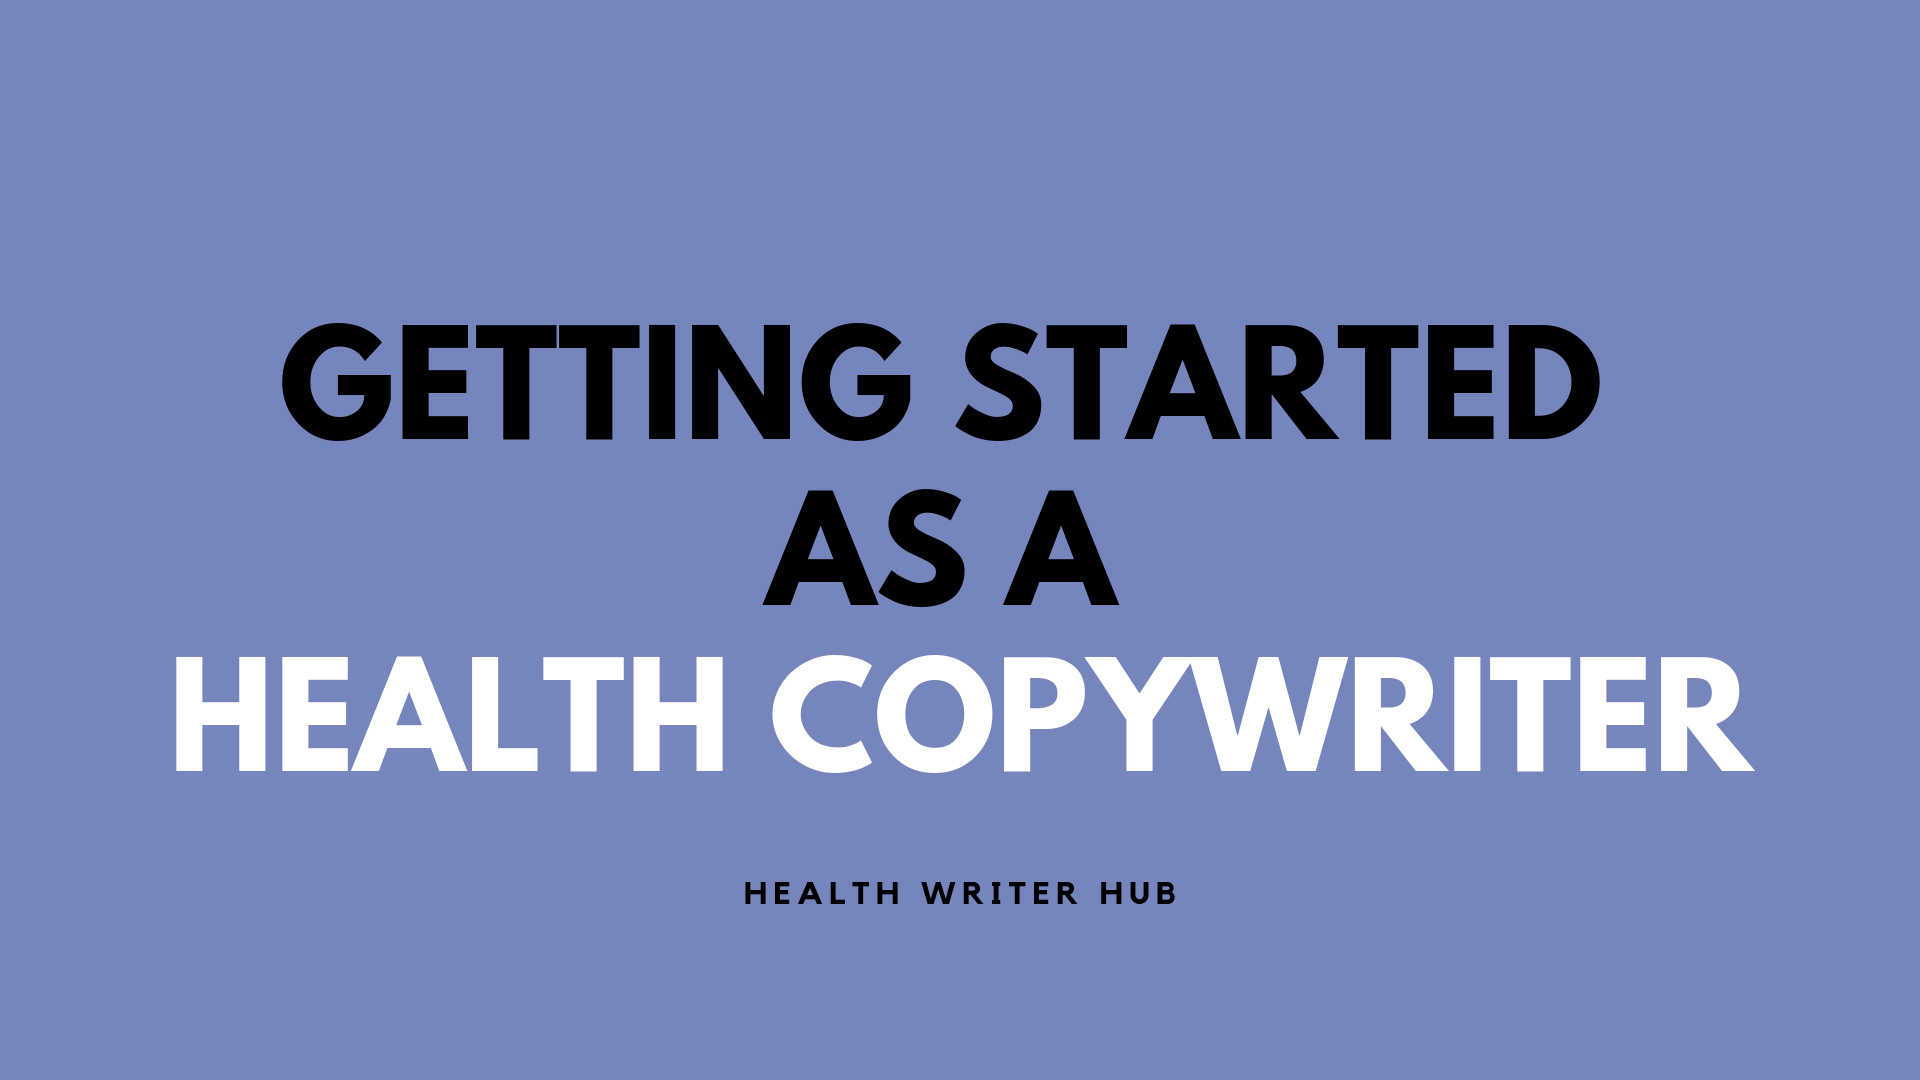 getting started as a health copywriter